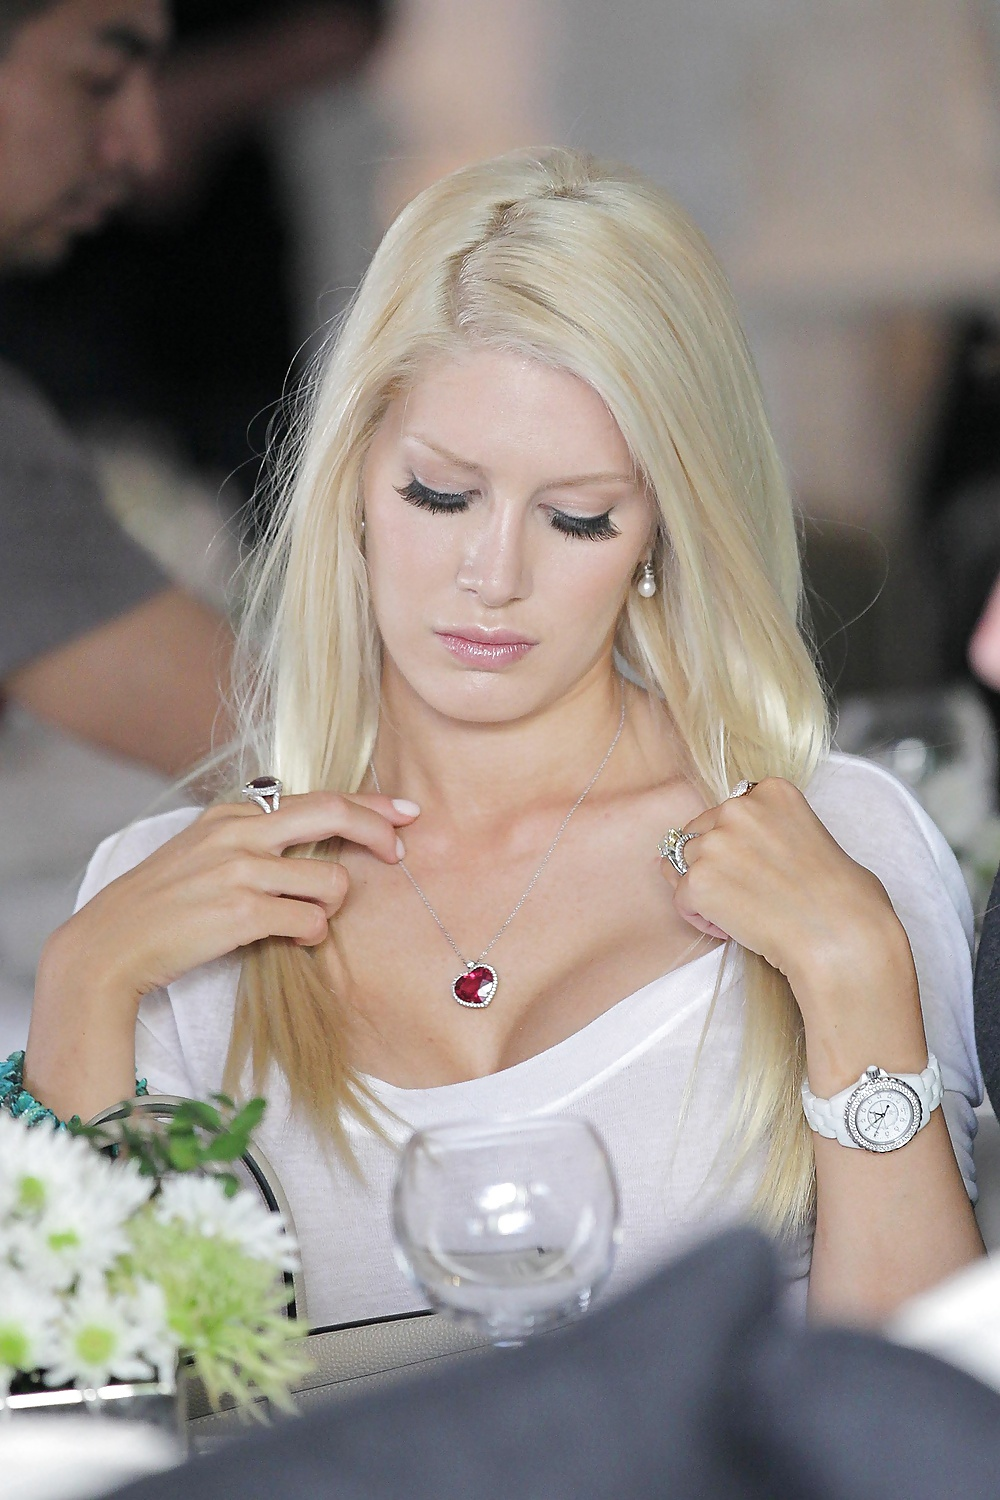 Heidi montag removes breast implants that were falling out of her skin